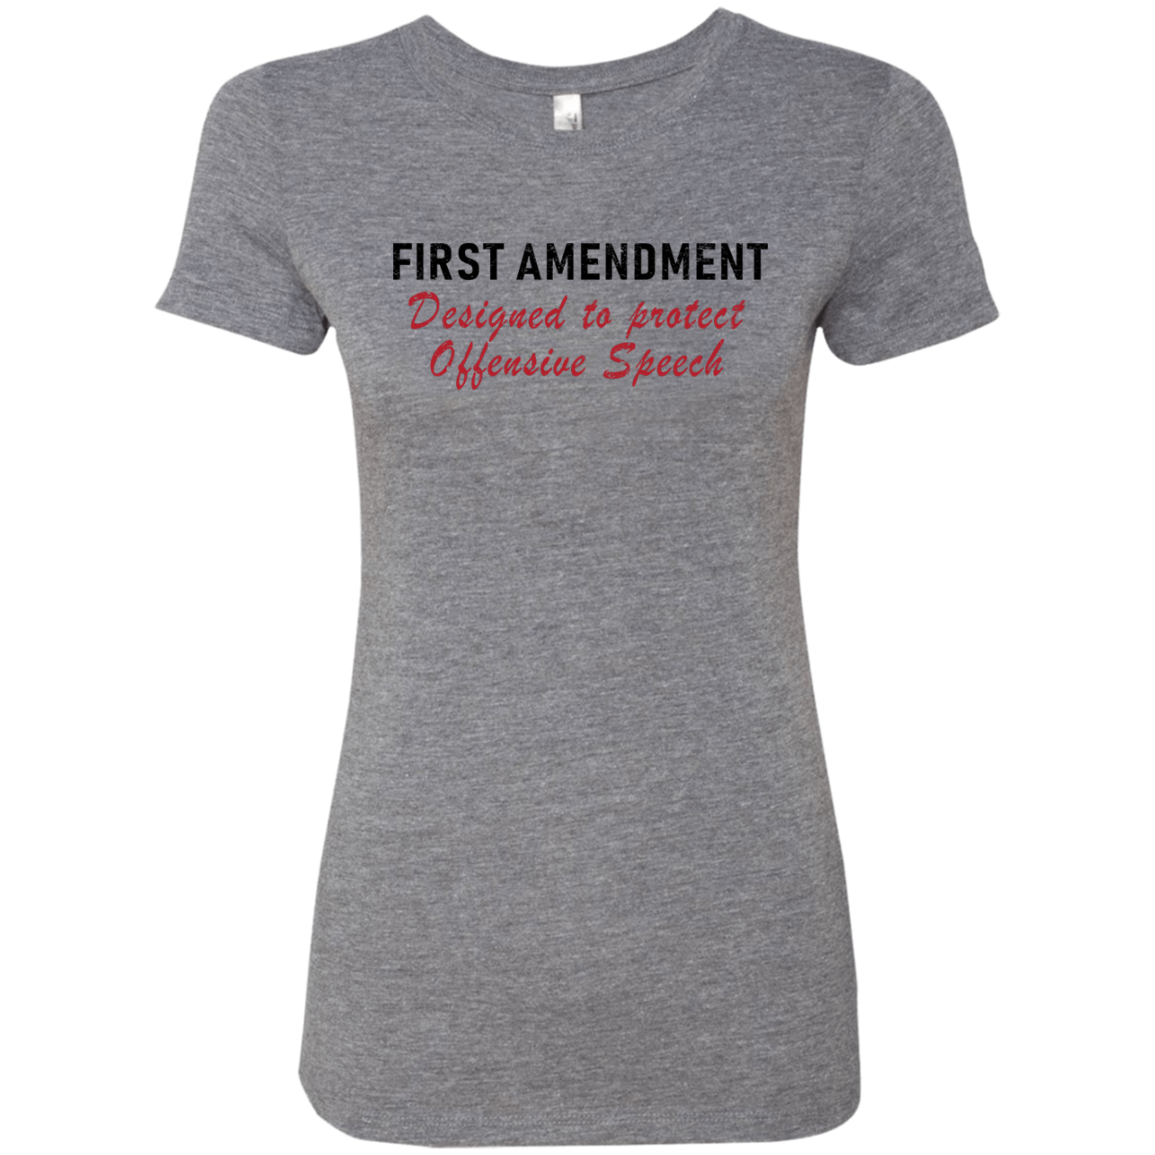 First Amendment Designed To Protect Offensive Speech Women's Classic Tee